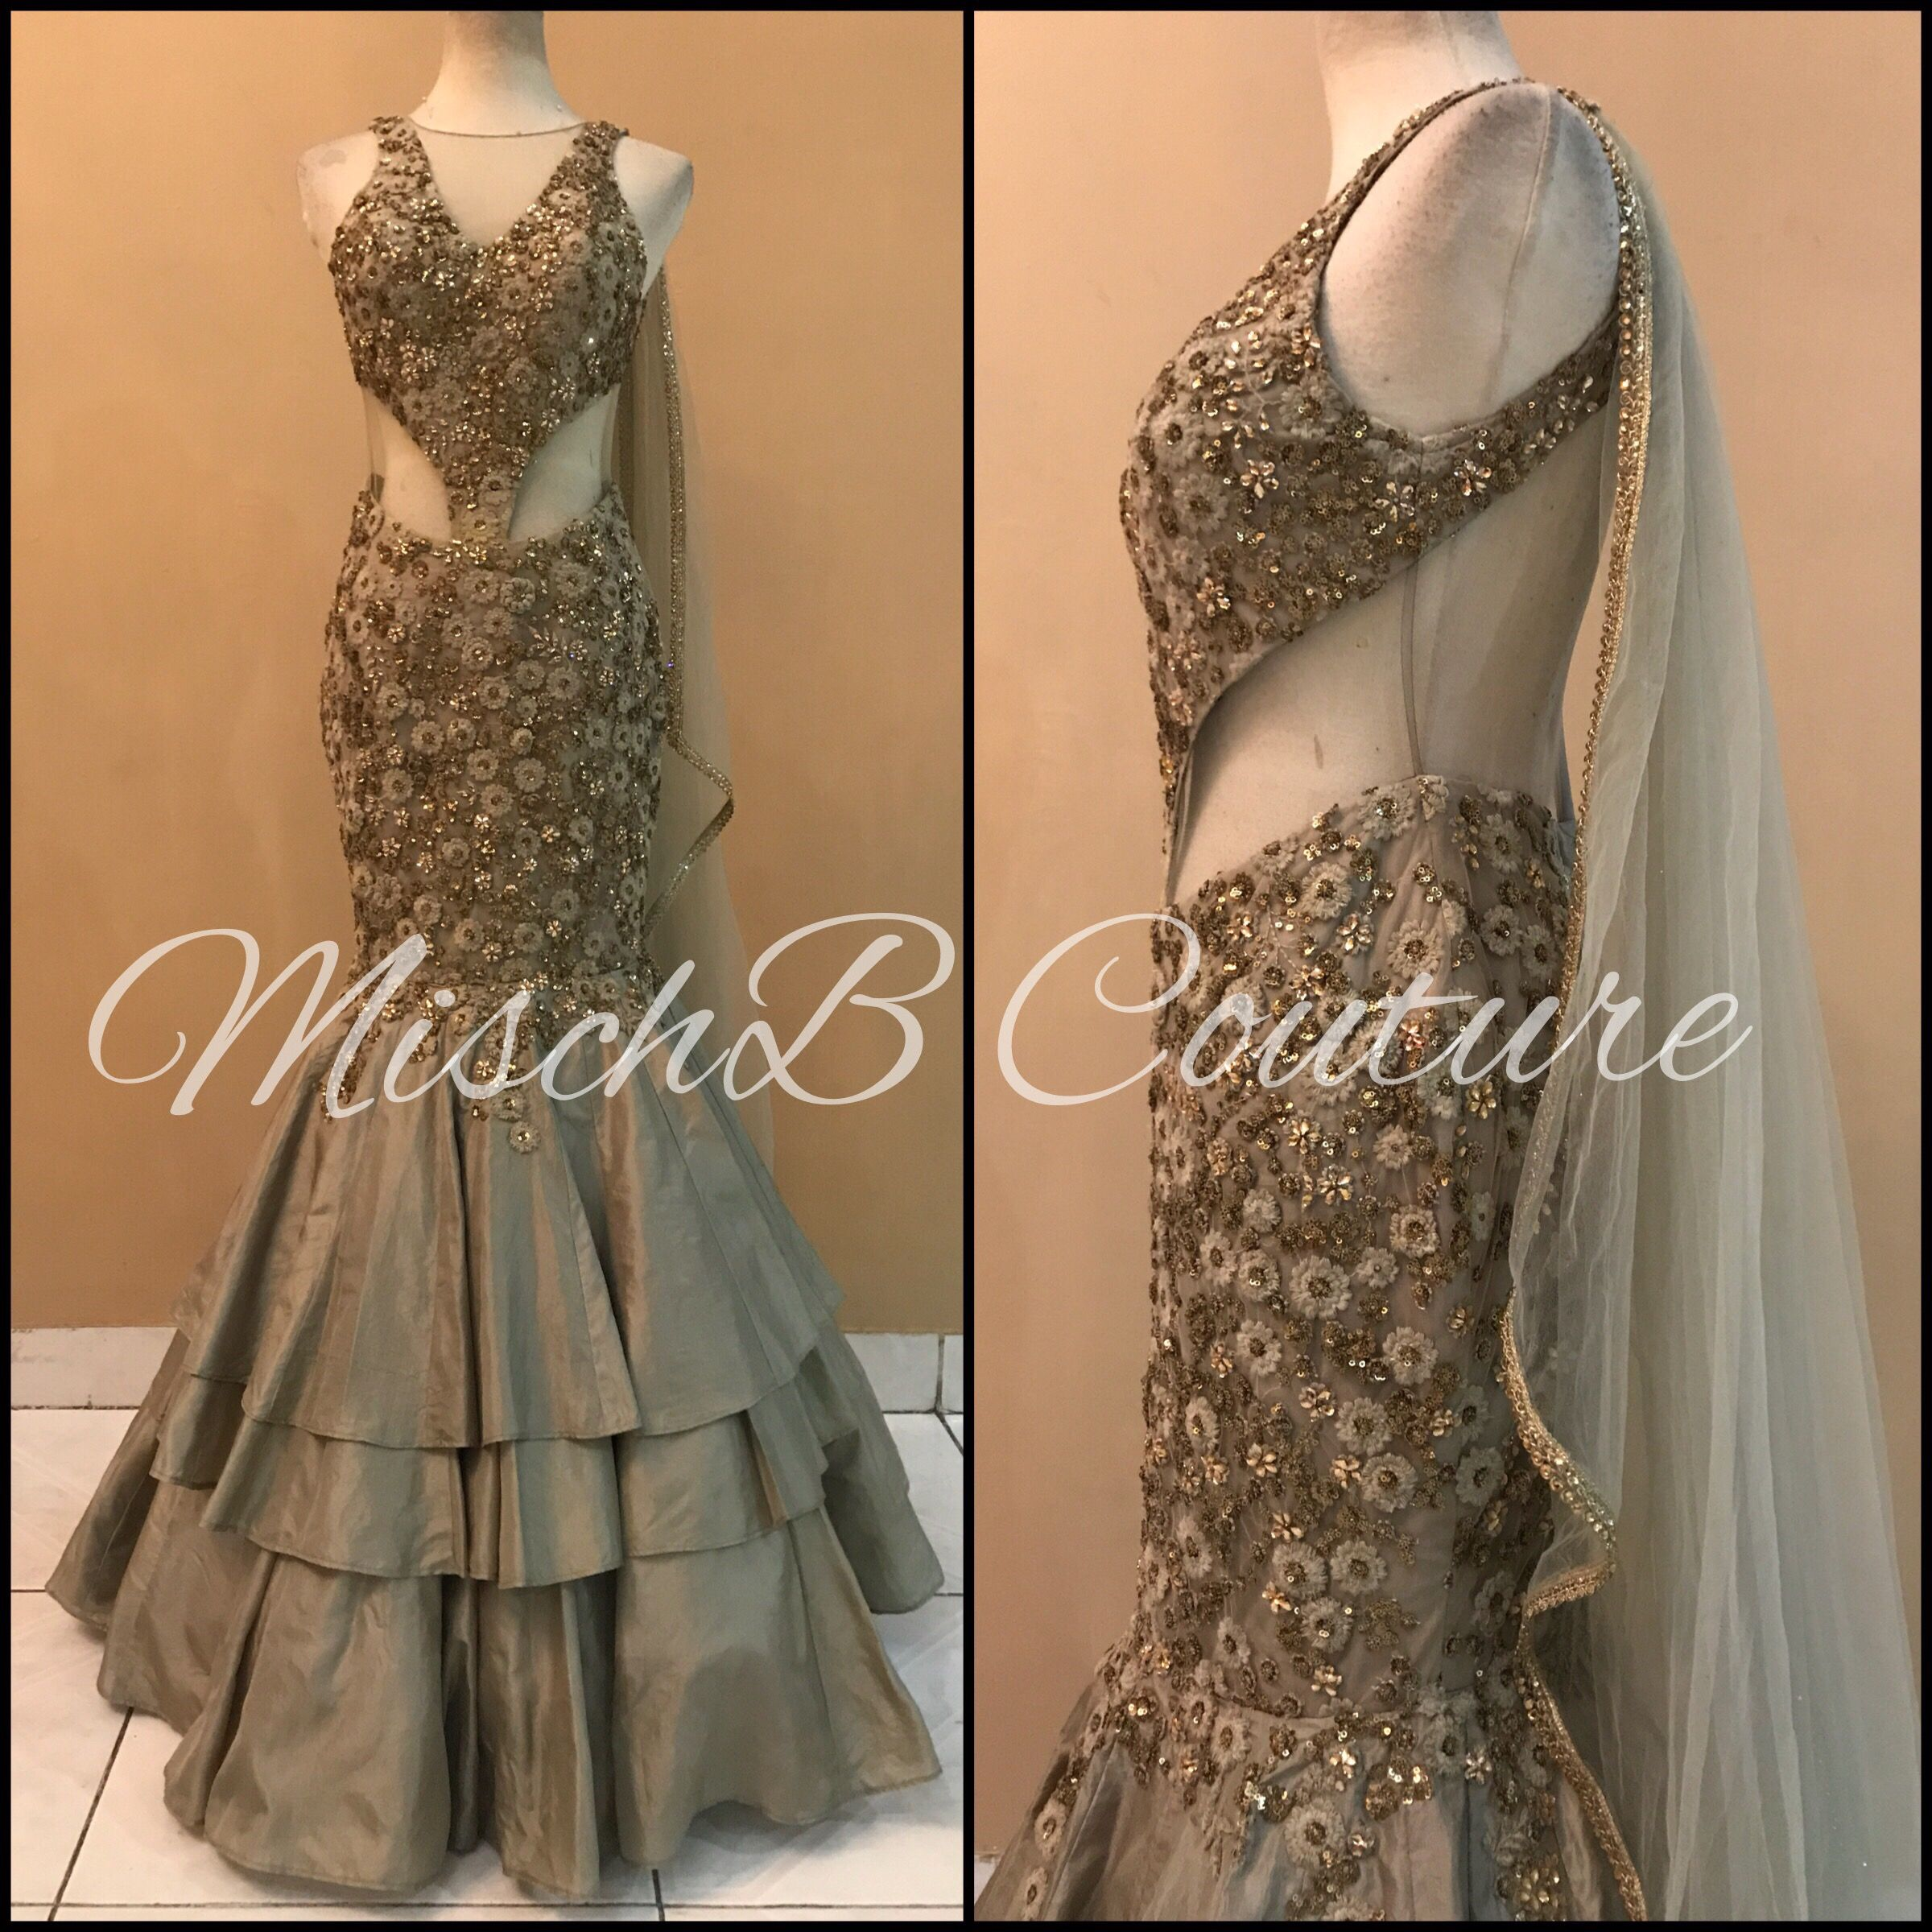 Neutral Layering Saree Gown By Mischb Couture Indian Bridal